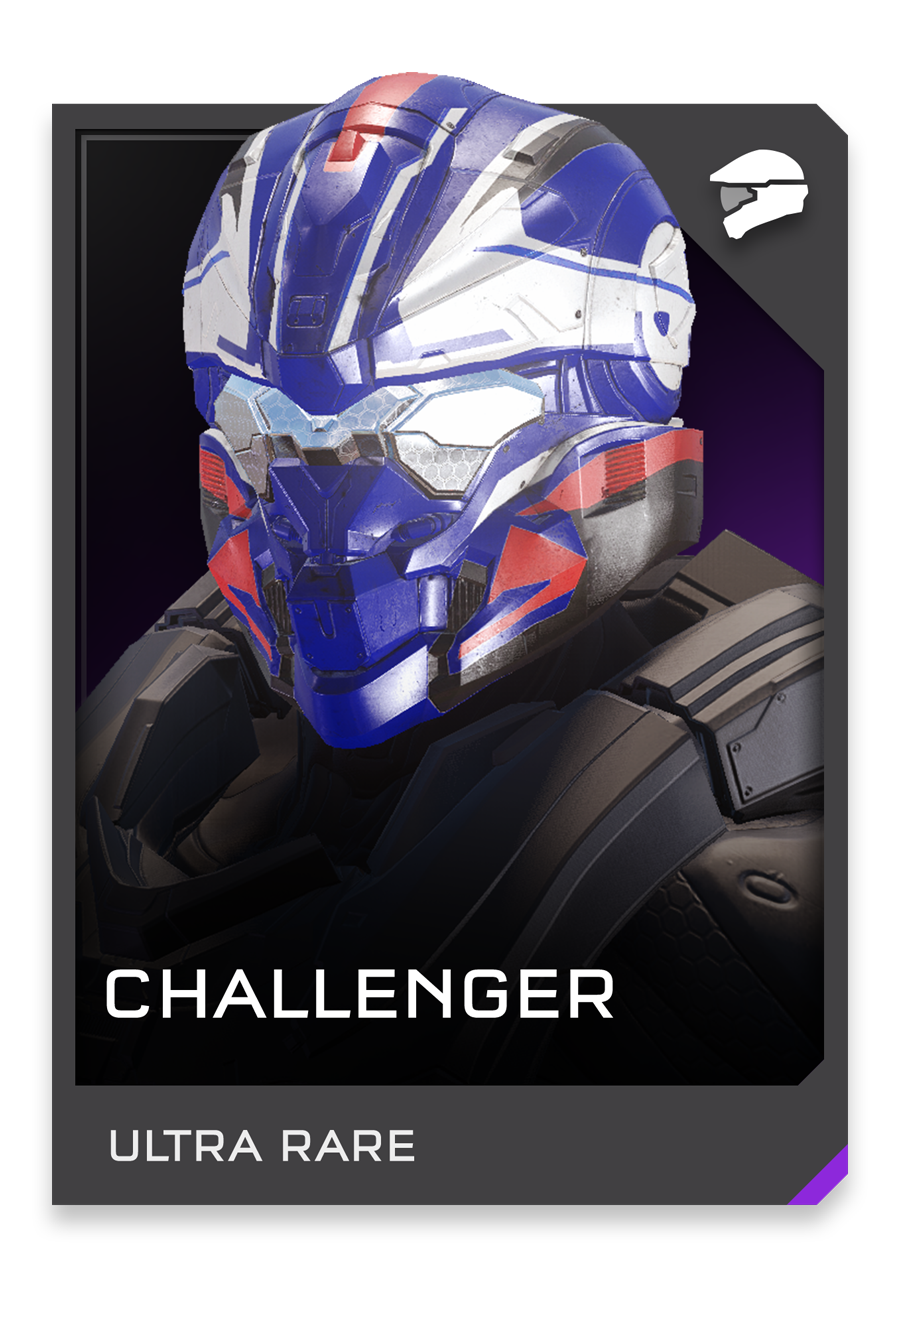 Halo-5-Guardians-Challenger-REQ-Card-Helmet